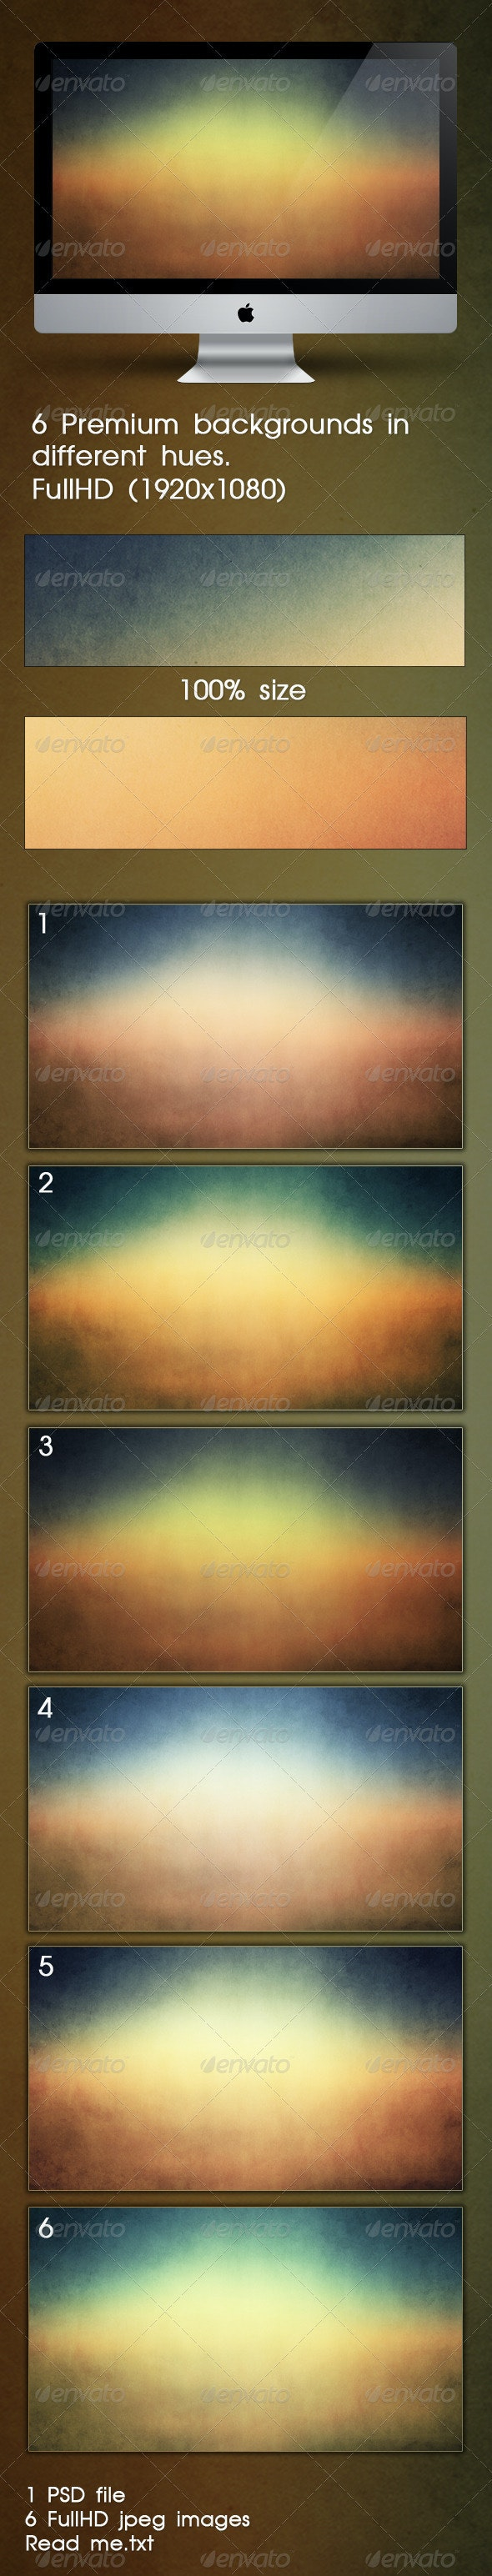 6 Premium Backgrounds In Different Hues - Backgrounds Graphics